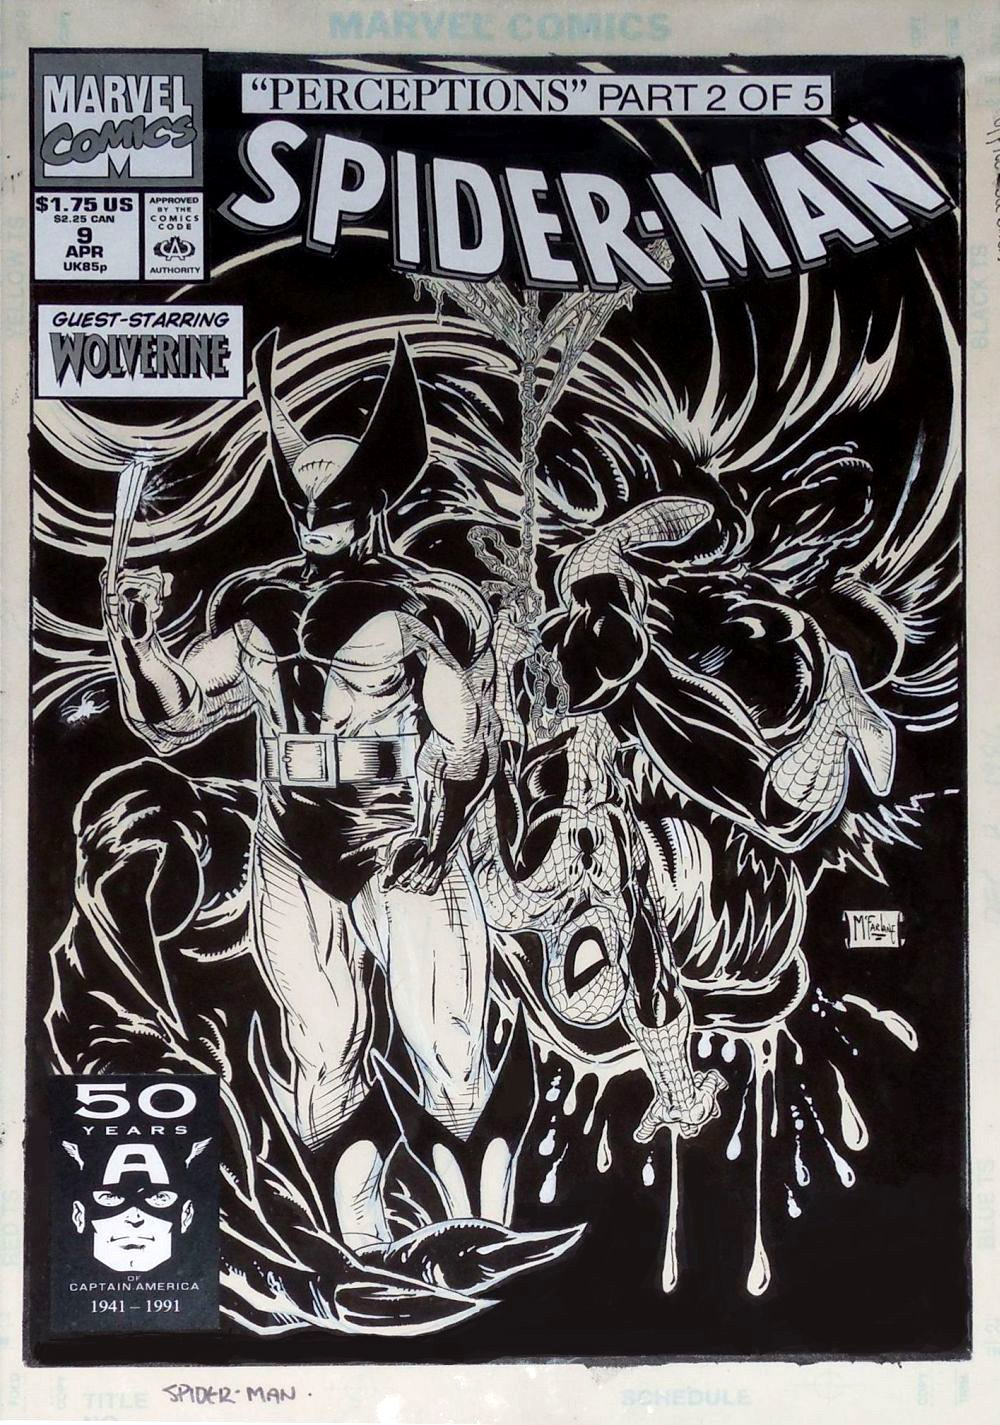 Spider-Man #9 Cover (1990) SOLD SOLD SOLD!